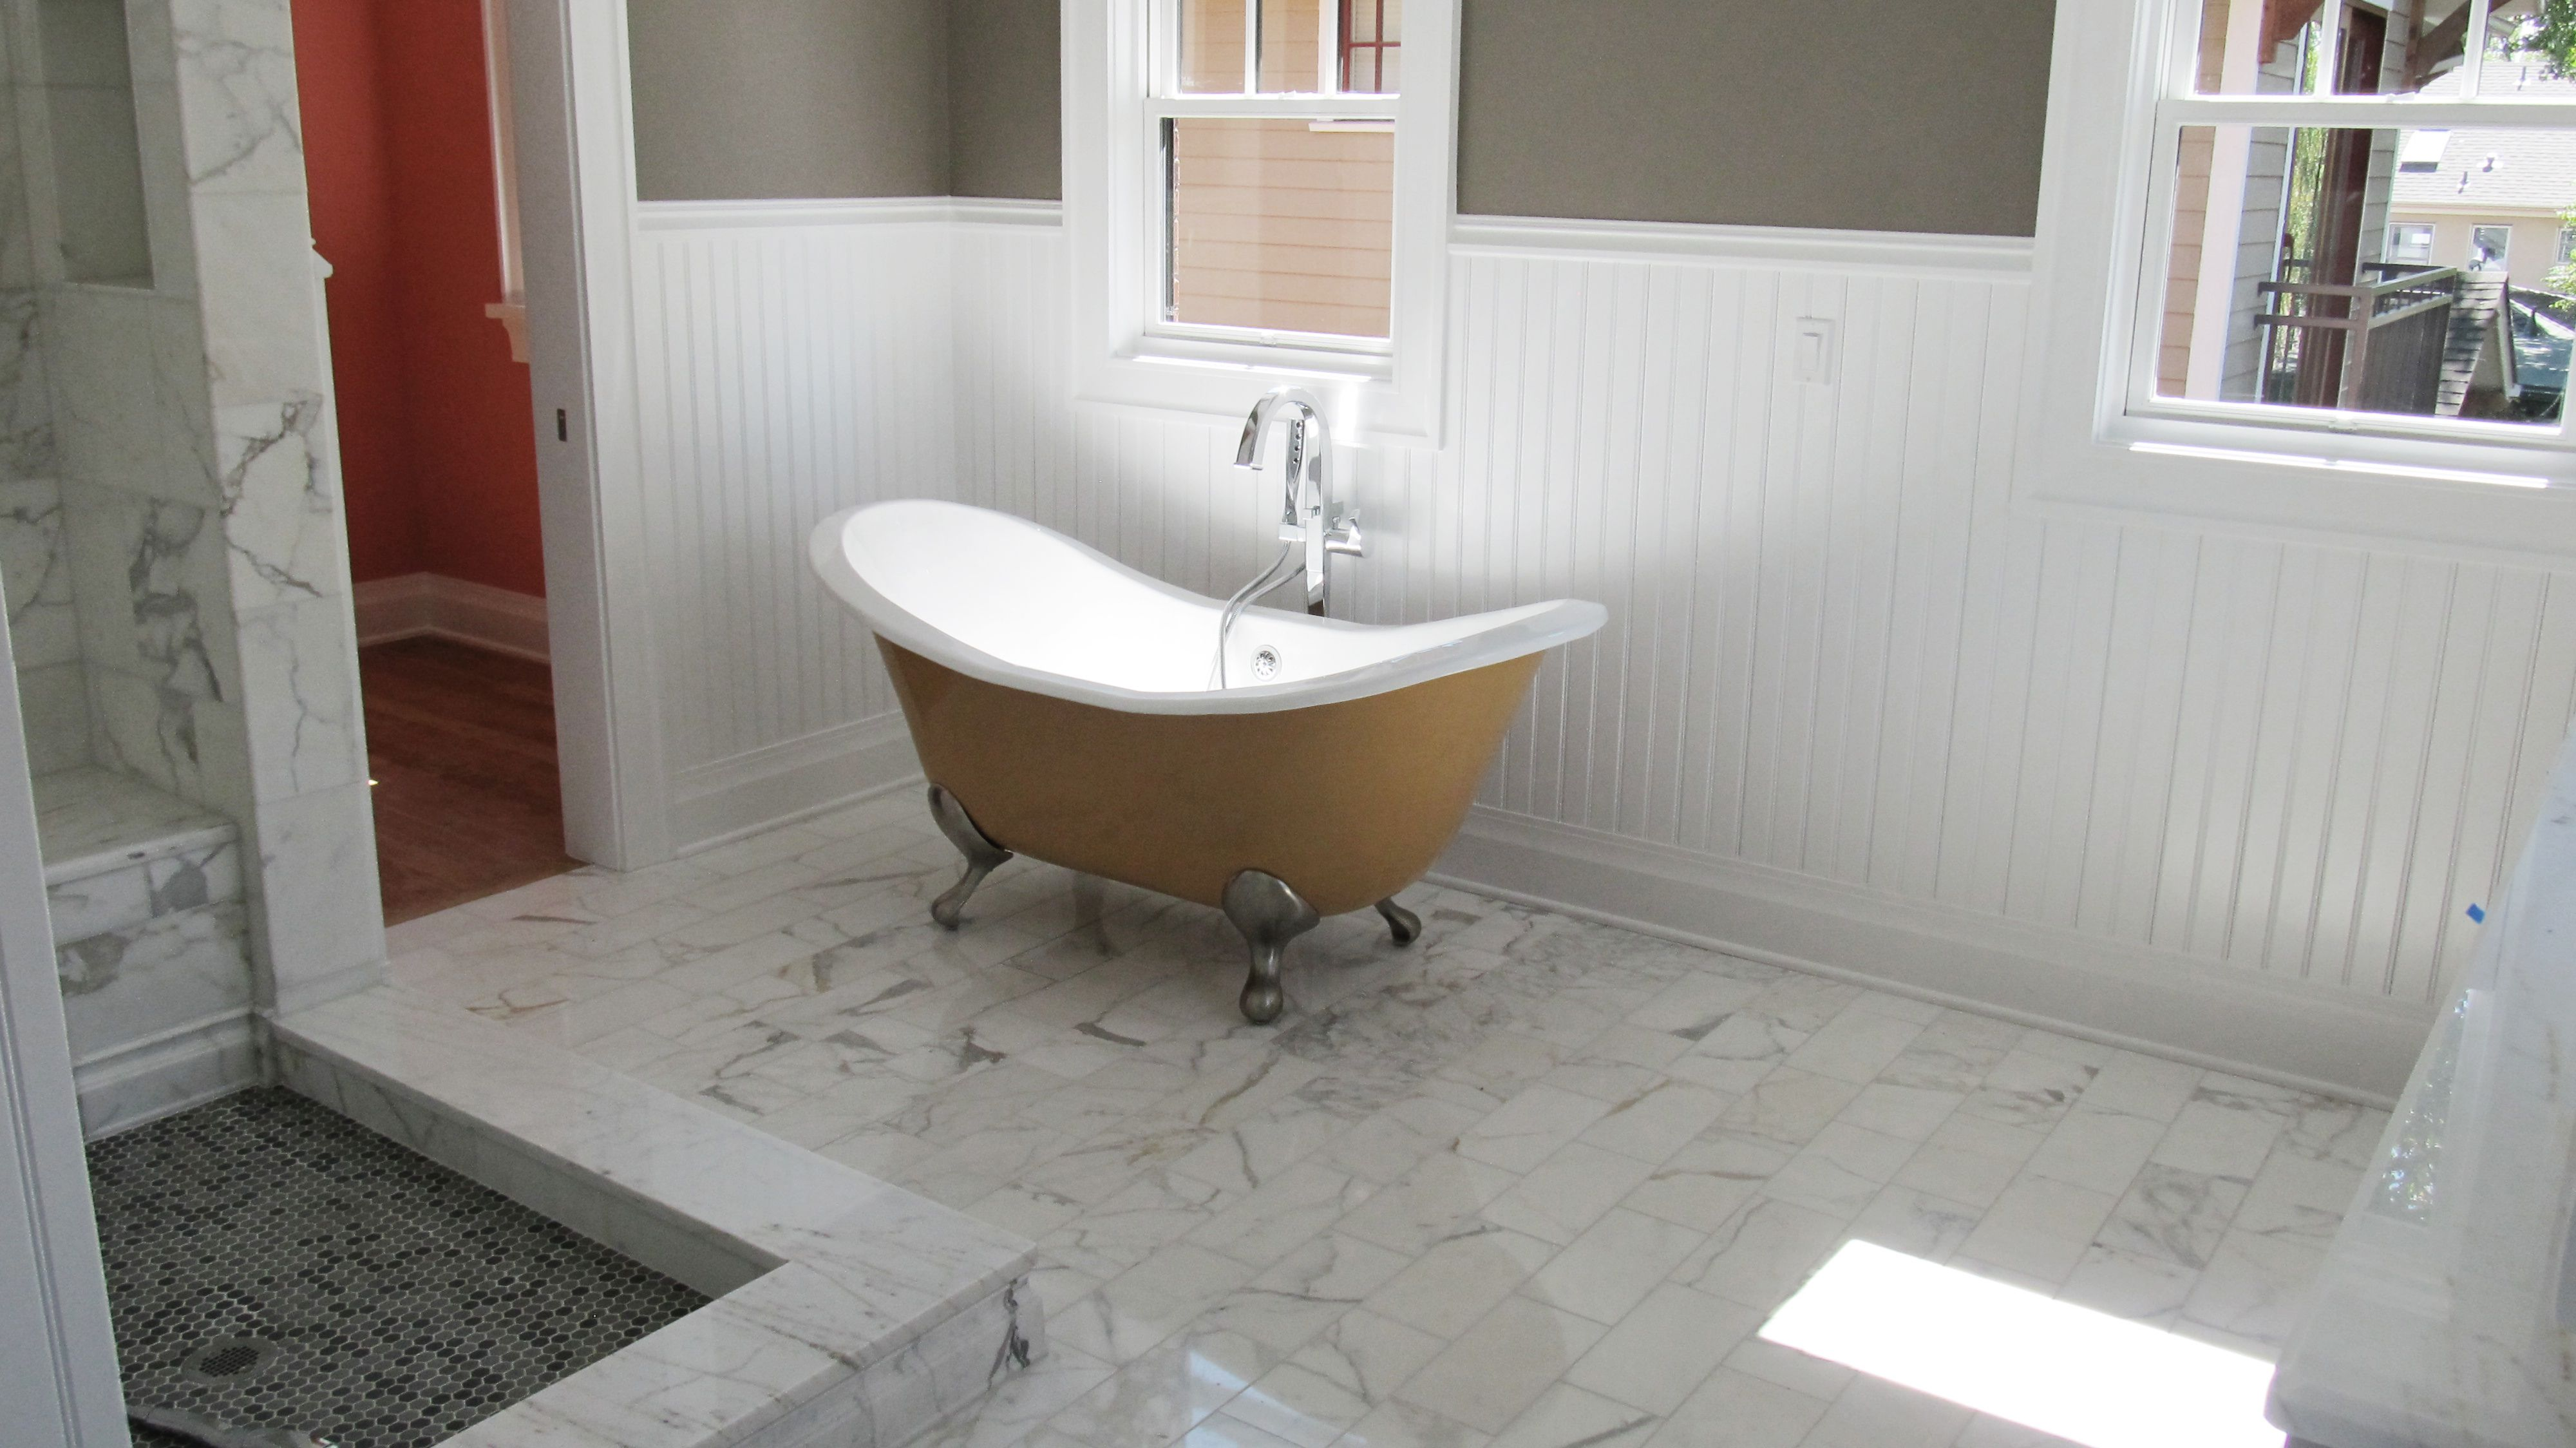 Nothing Like Really Dressing Up Your Bathrooms With Some Cool Wainscoting Love Aj Kirkegaard Contractors Gets Credit For These Beautiful Bathroom Upgrades